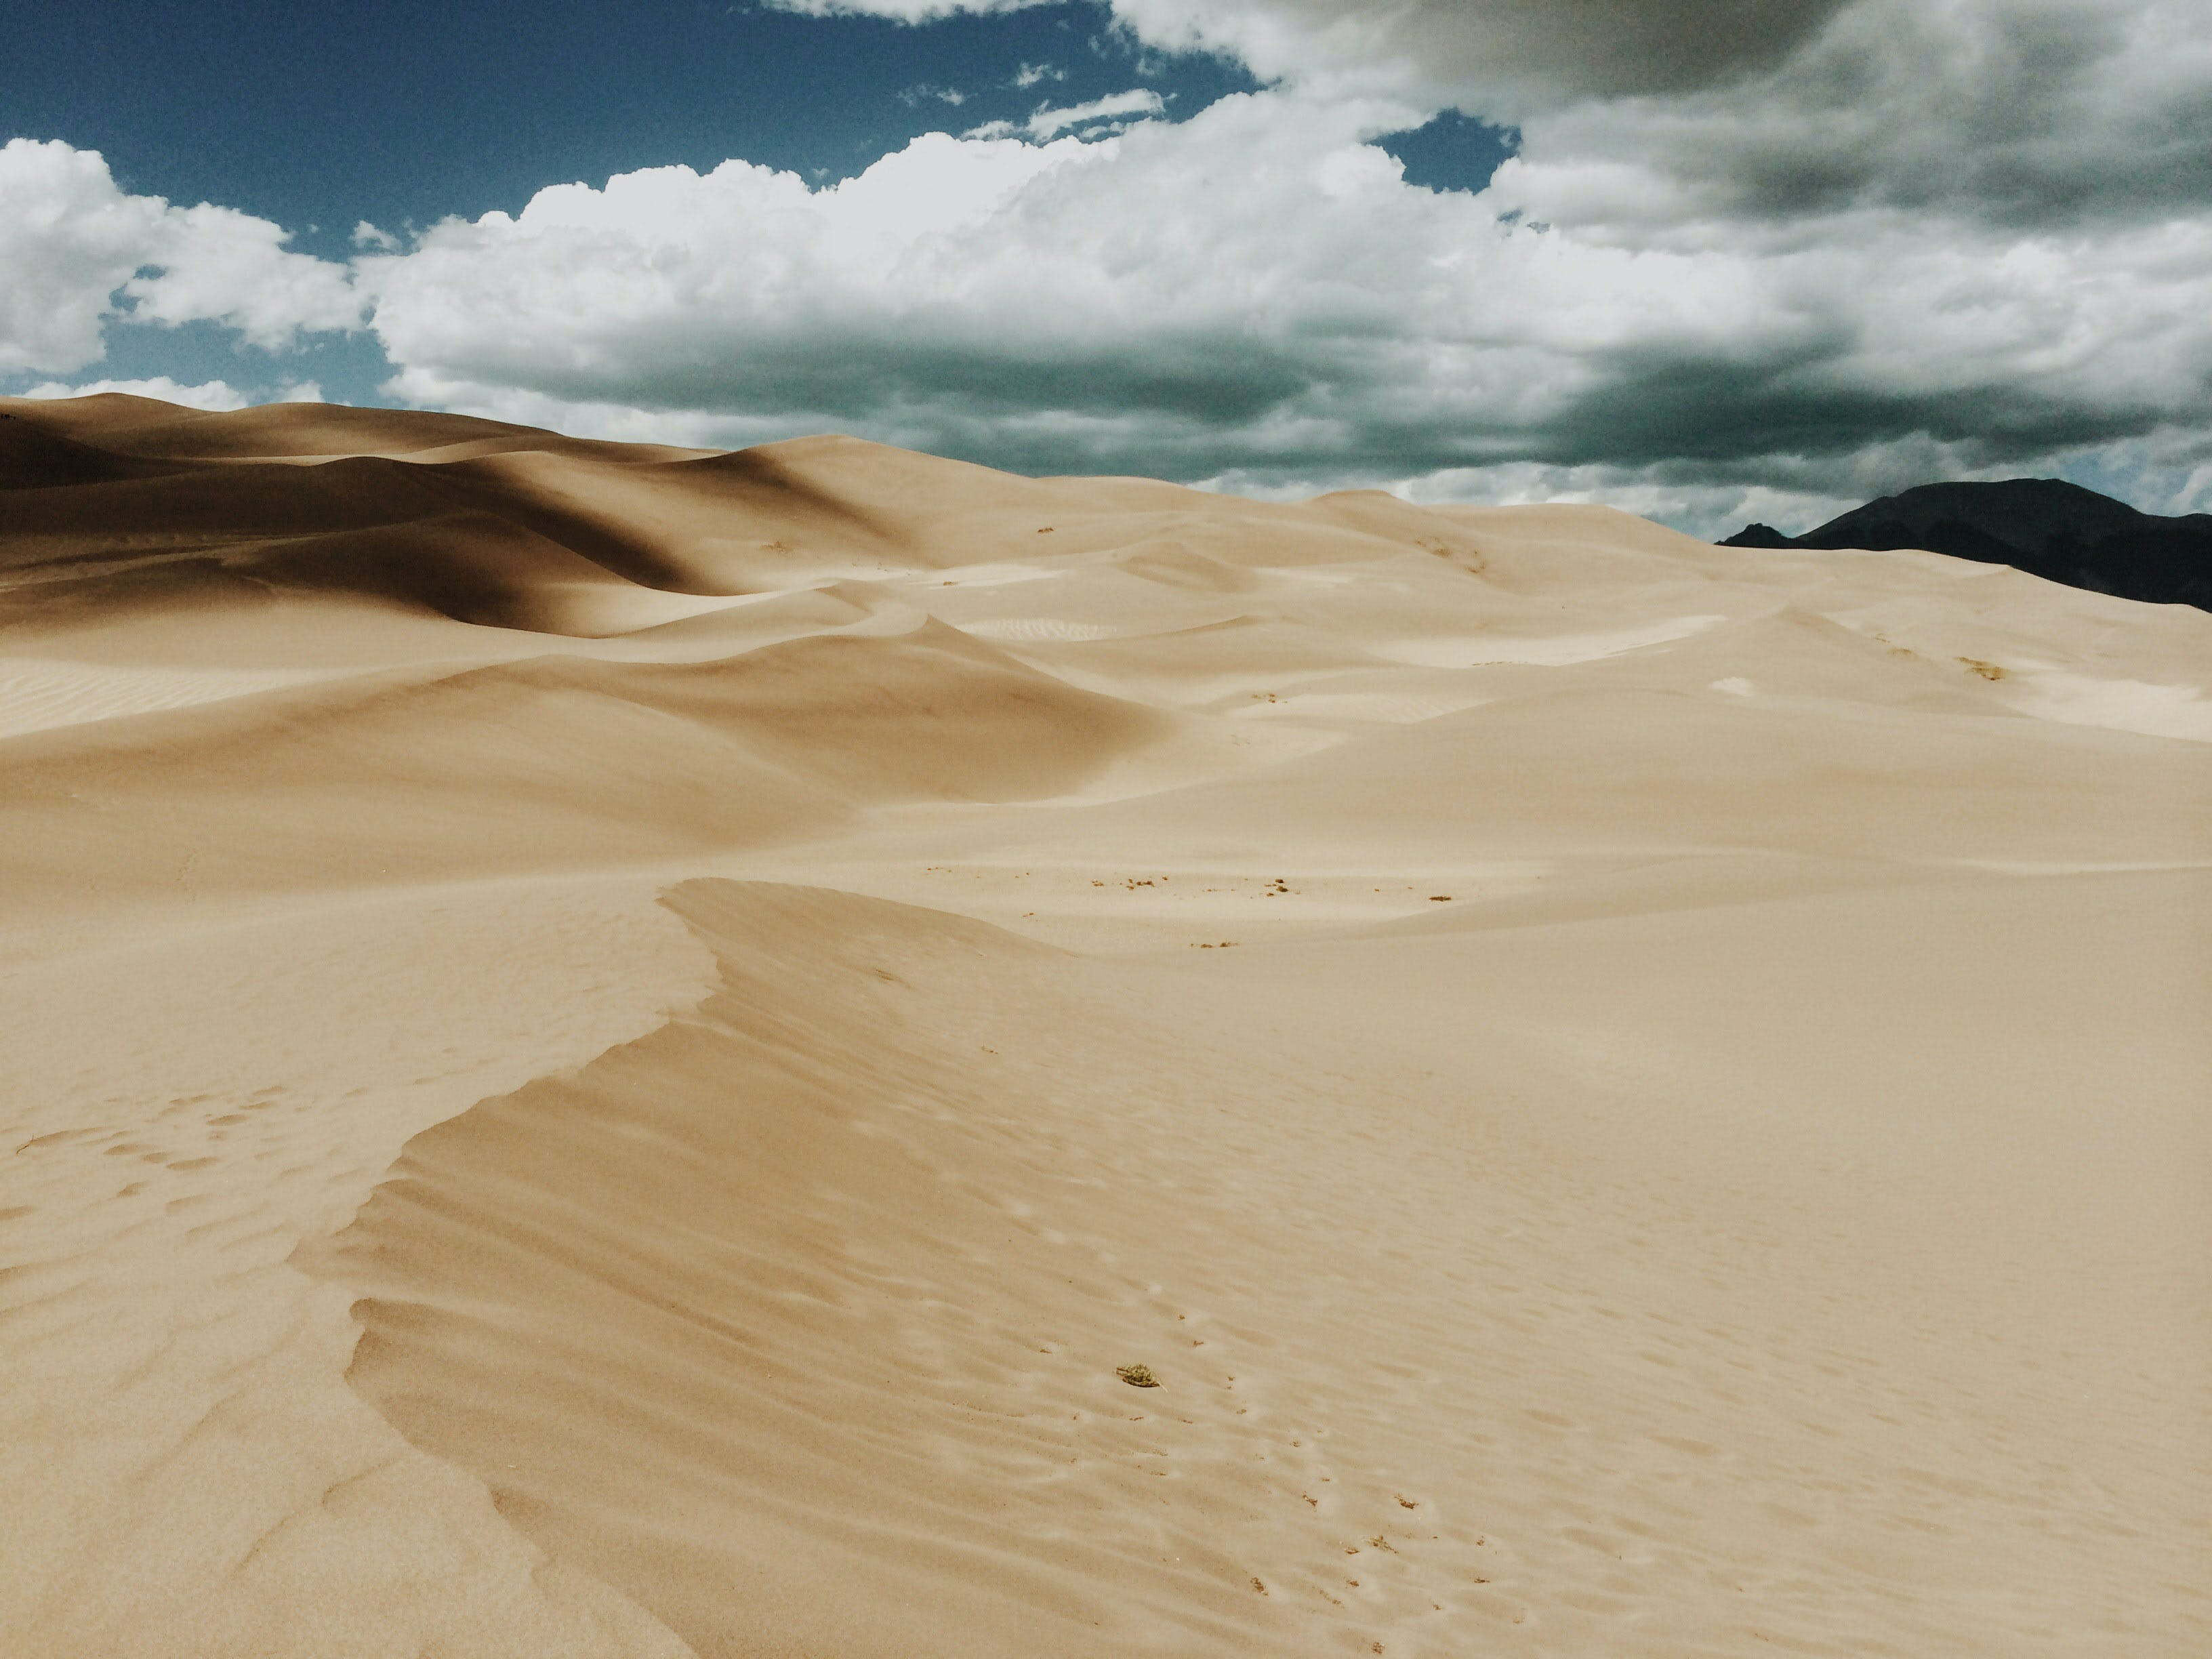 Free stock photo of landscape, sand, clouds, desert